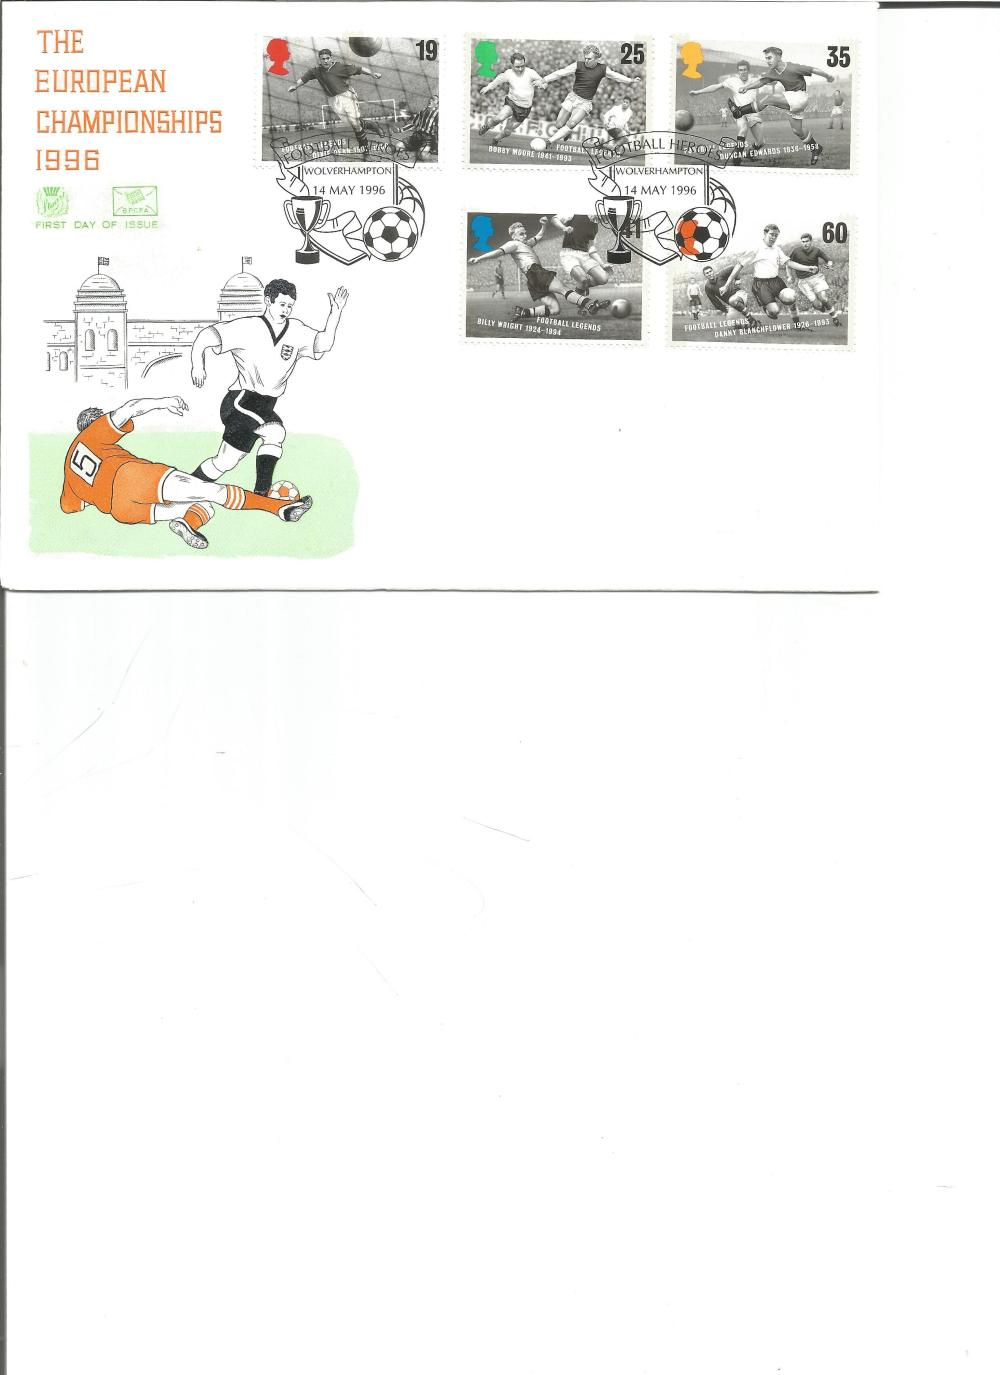 FDC The European Championship 1996 c/w set of five commemorative stamps double PM Football Heroes